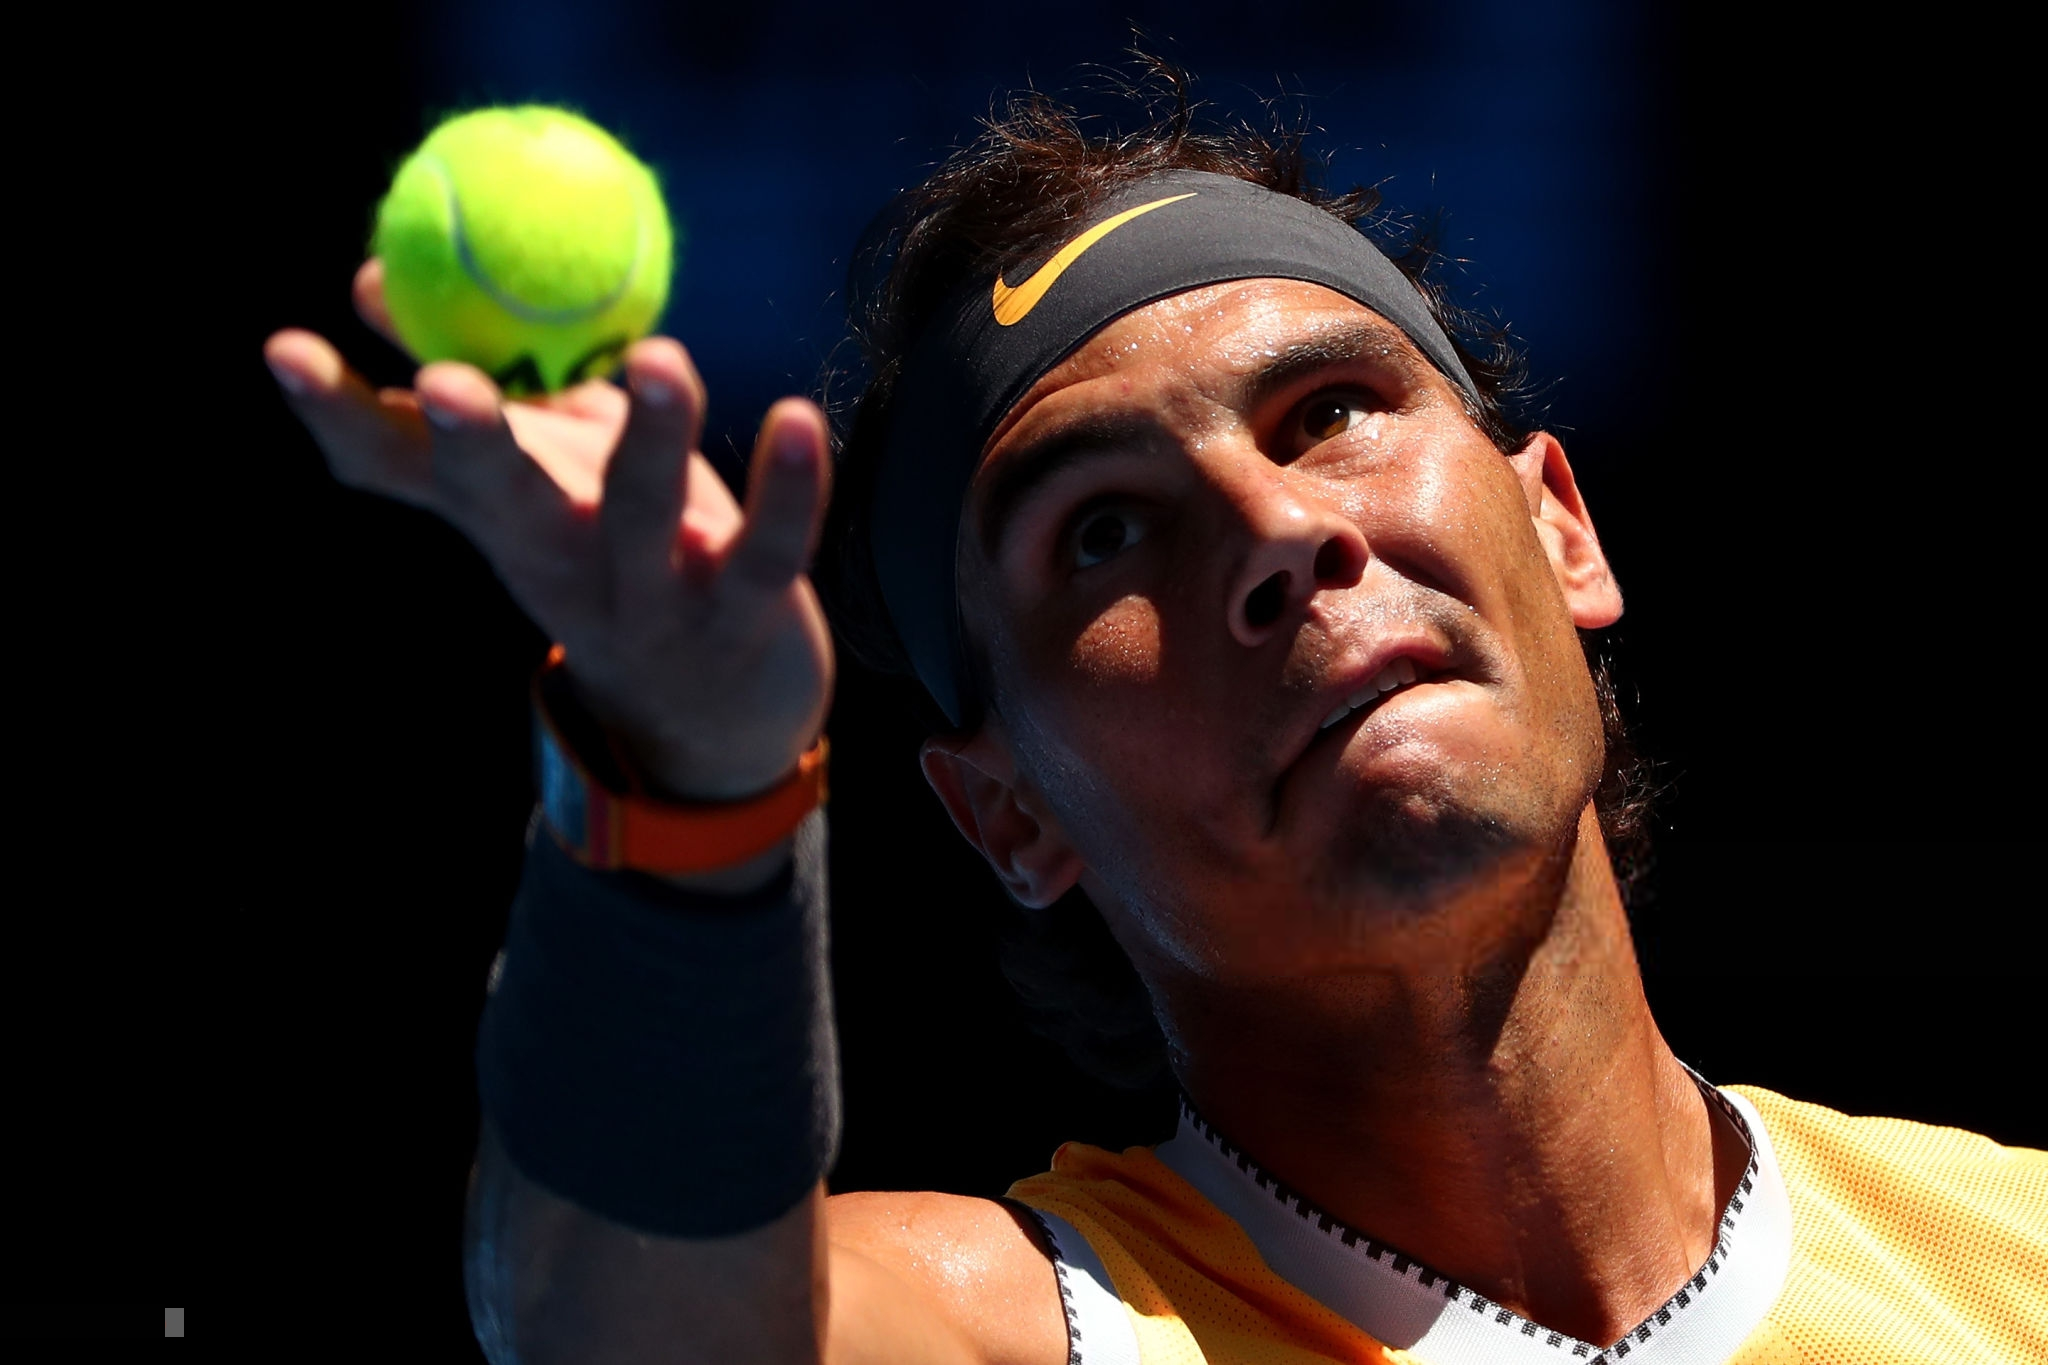 rafael nadal first round match at australian open 2019 photo (4 ... 9bf9ab2babfeb